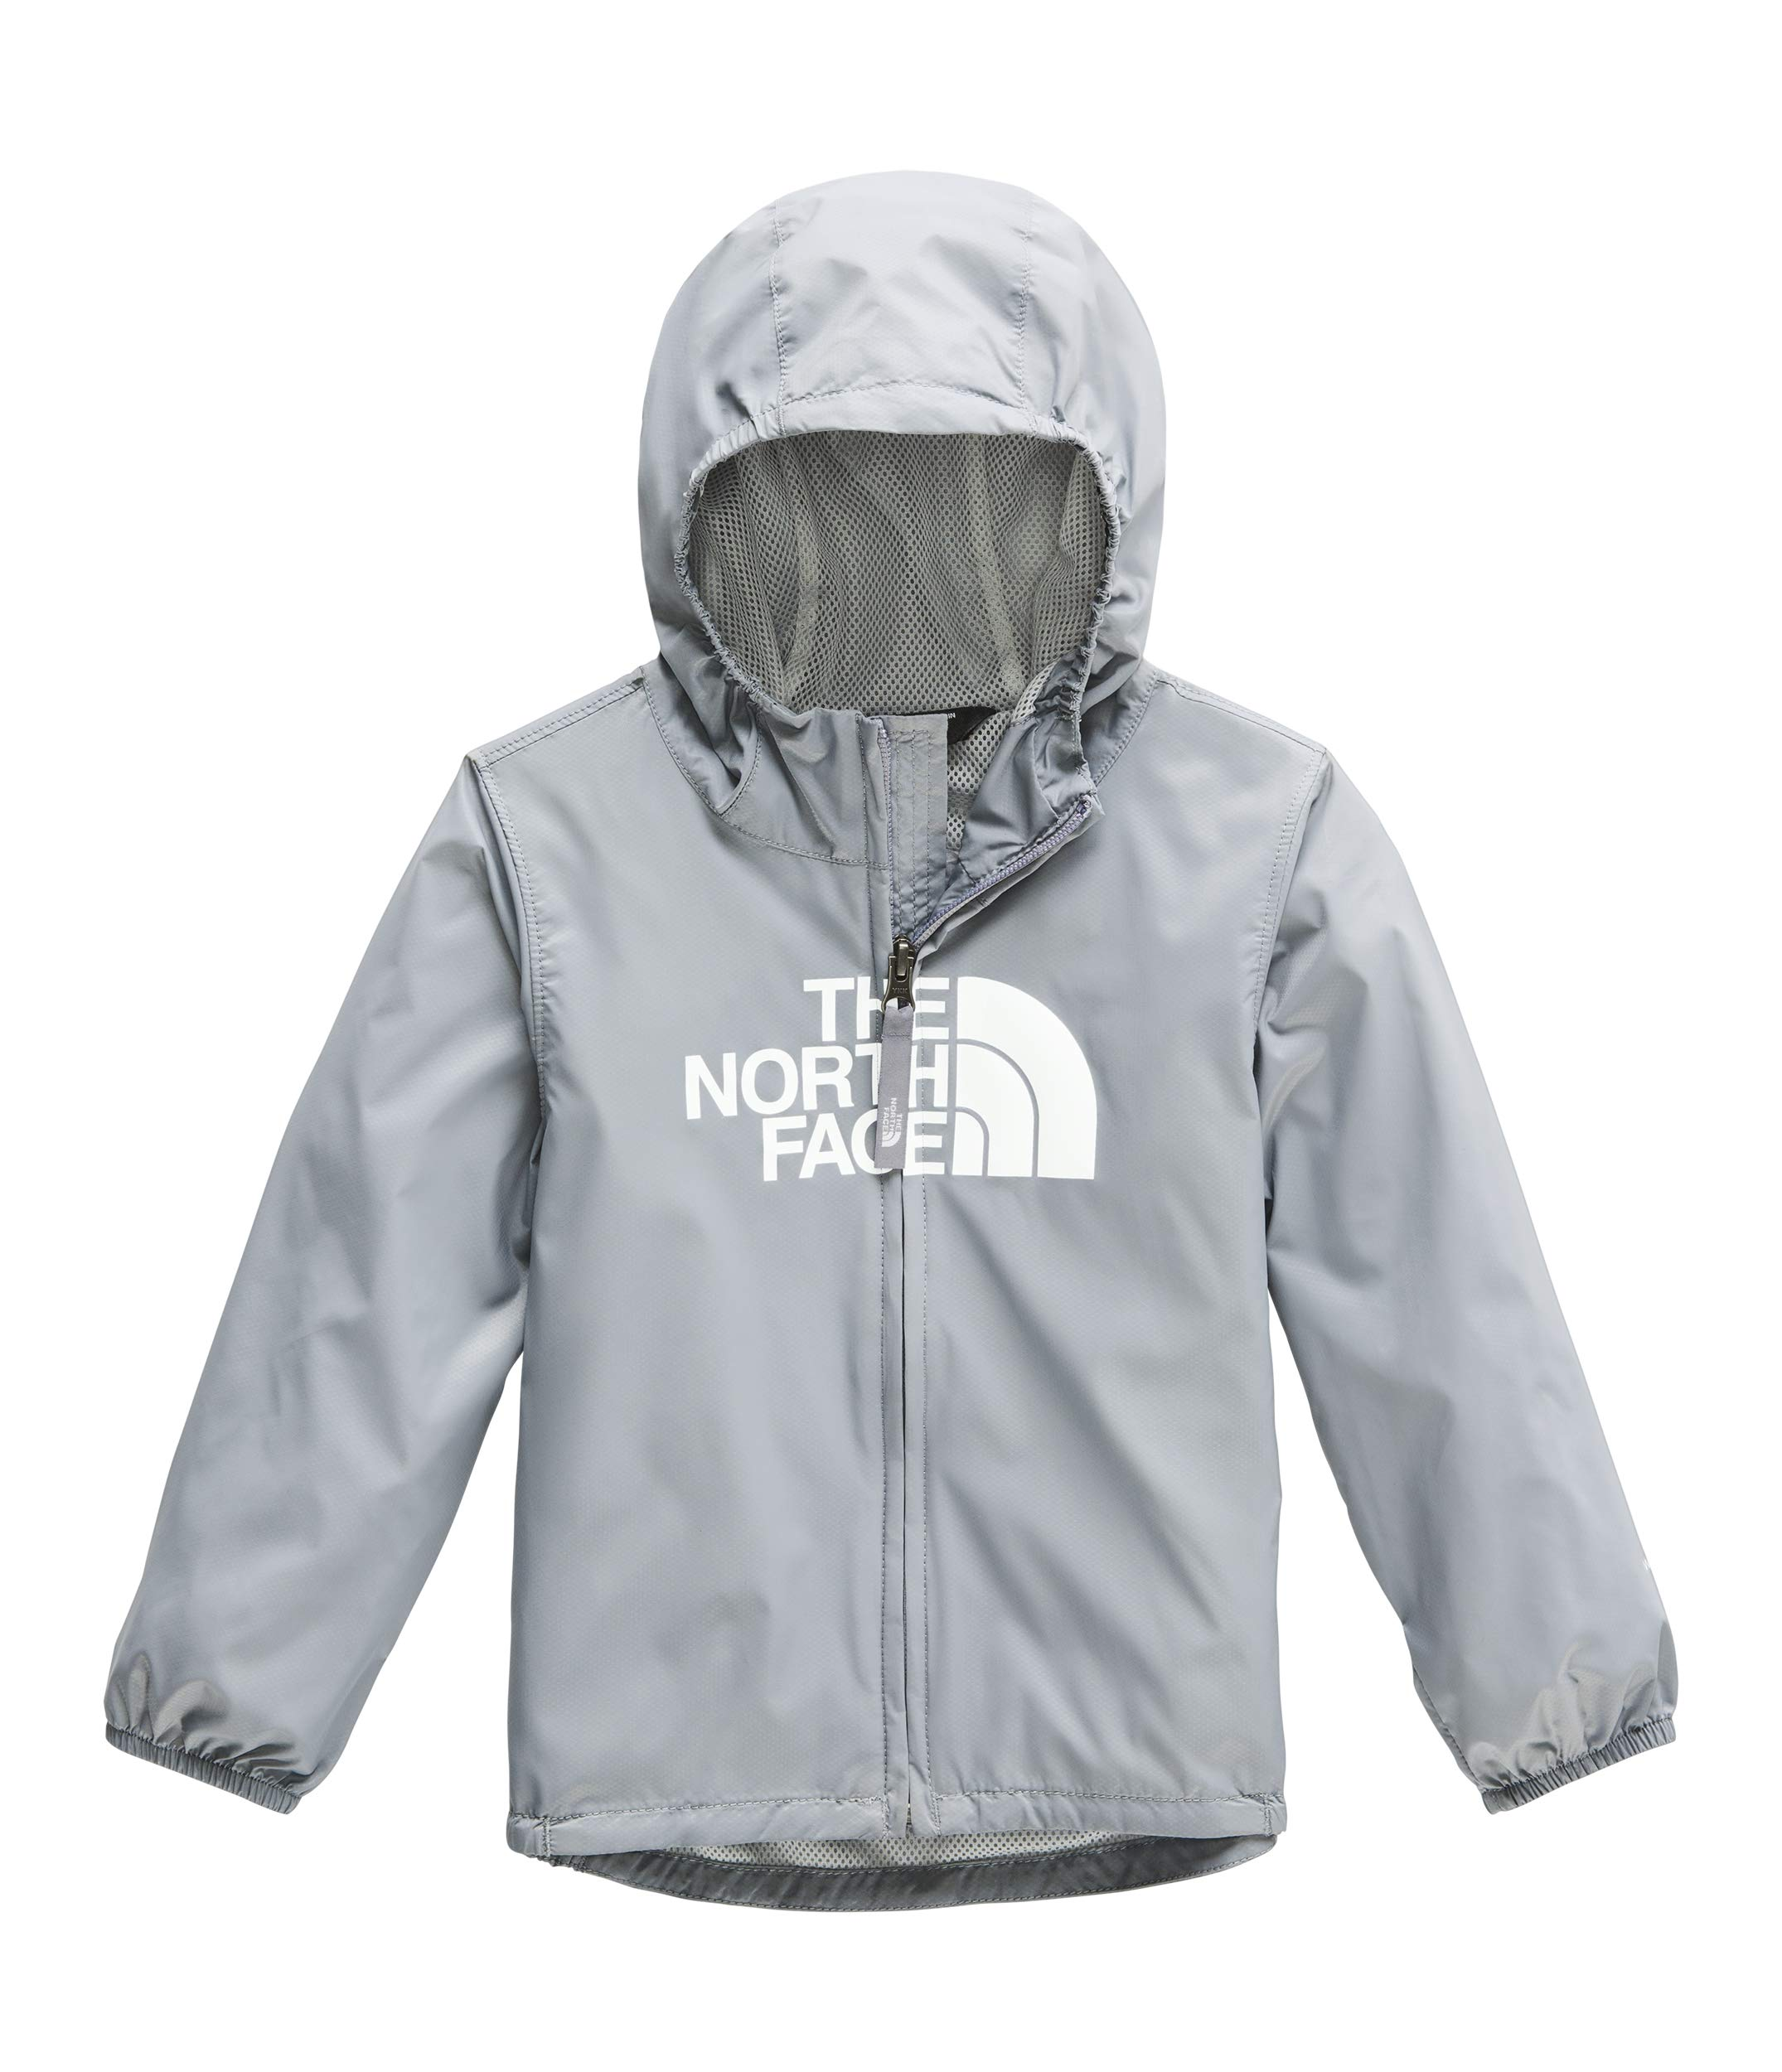 The North Face Kids Baby Boy's Flurry Wind Jacket (Toddler) Mid Grey 2T Toddler